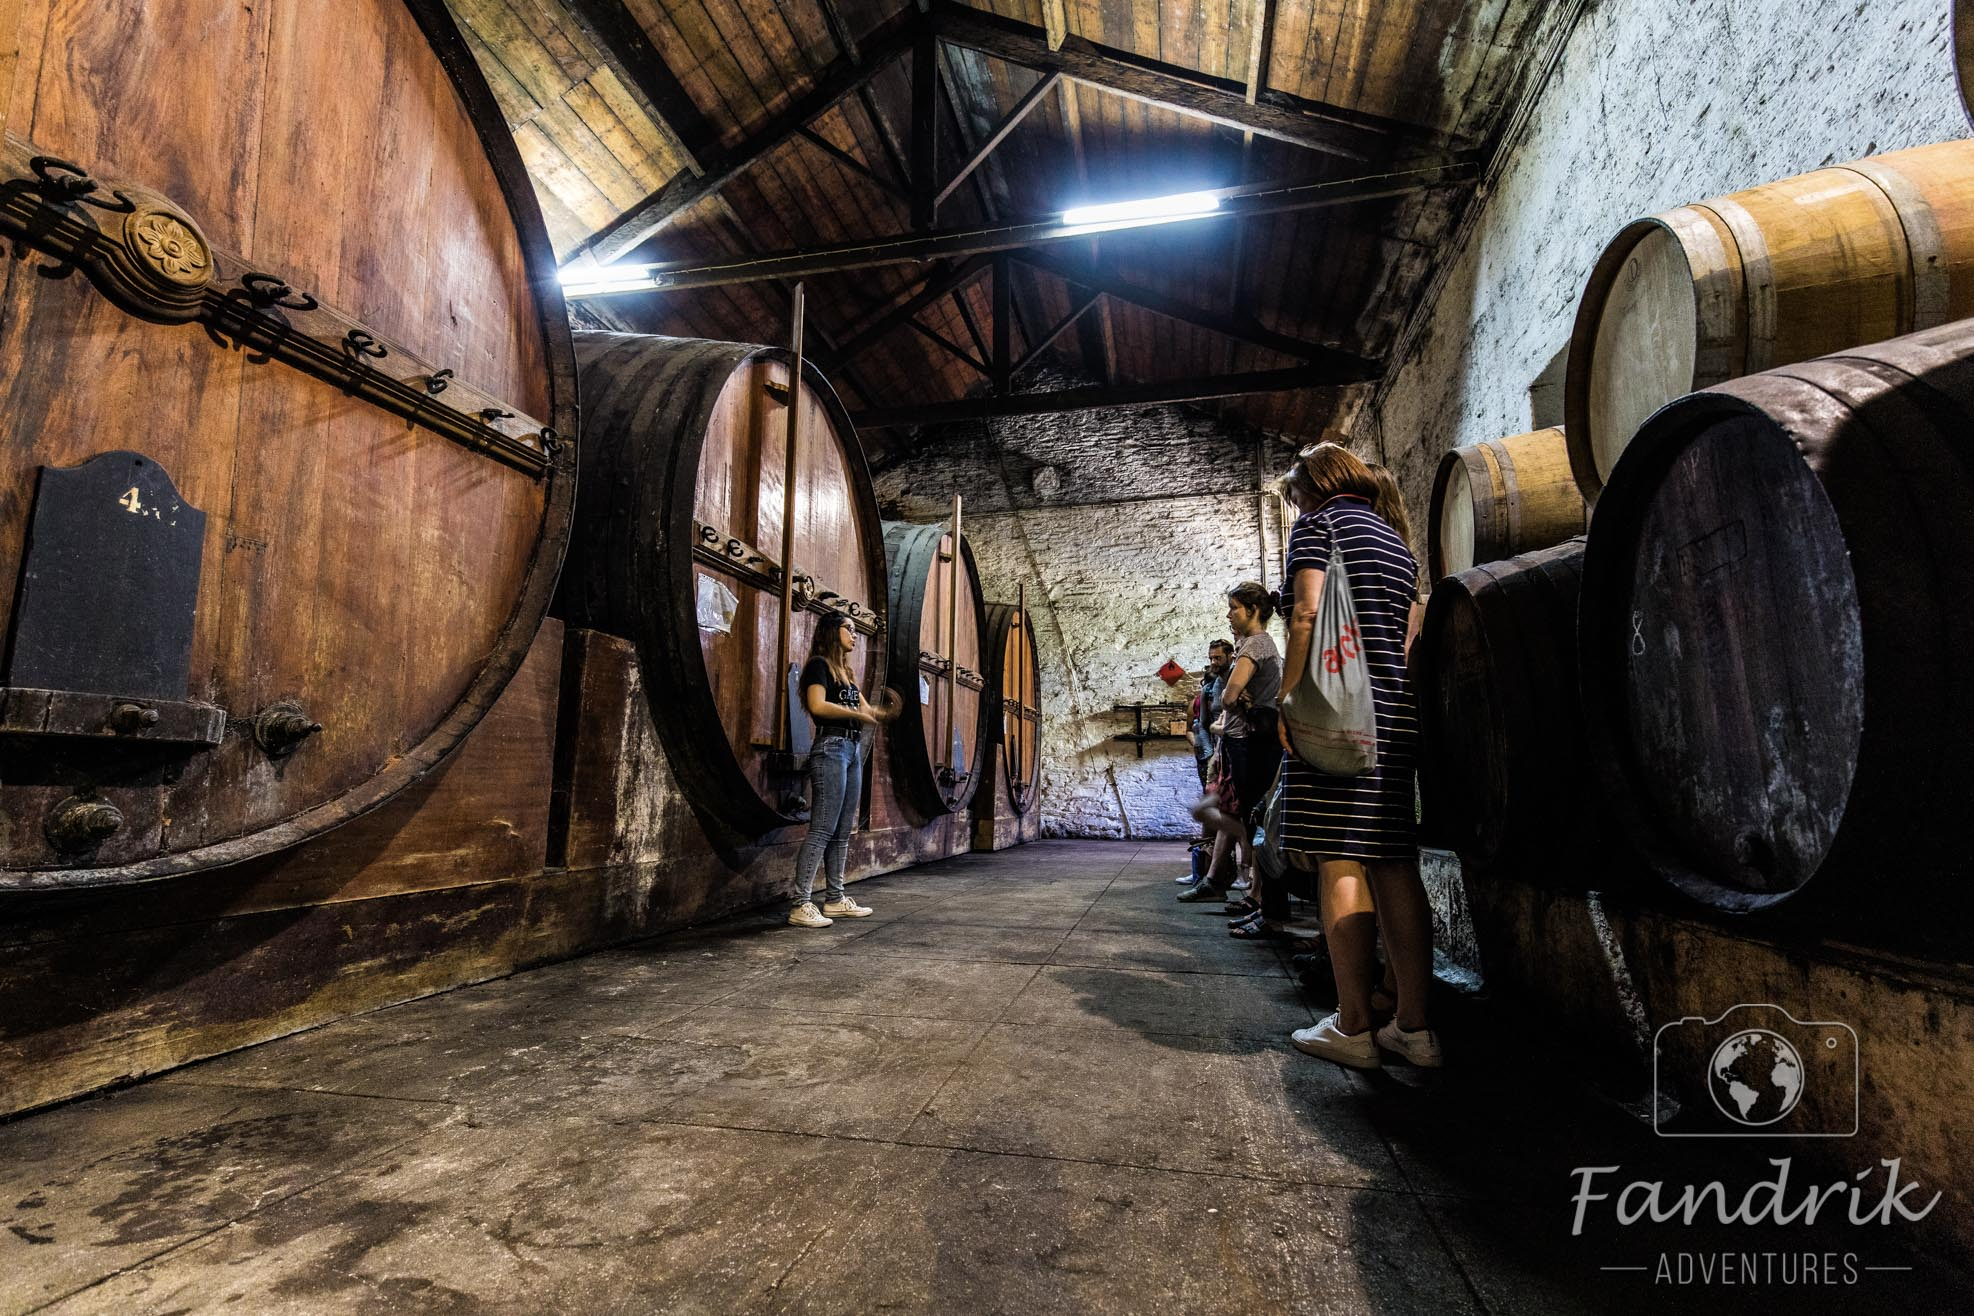 Old port wine barrels in a cellar of a winery in Portugal.